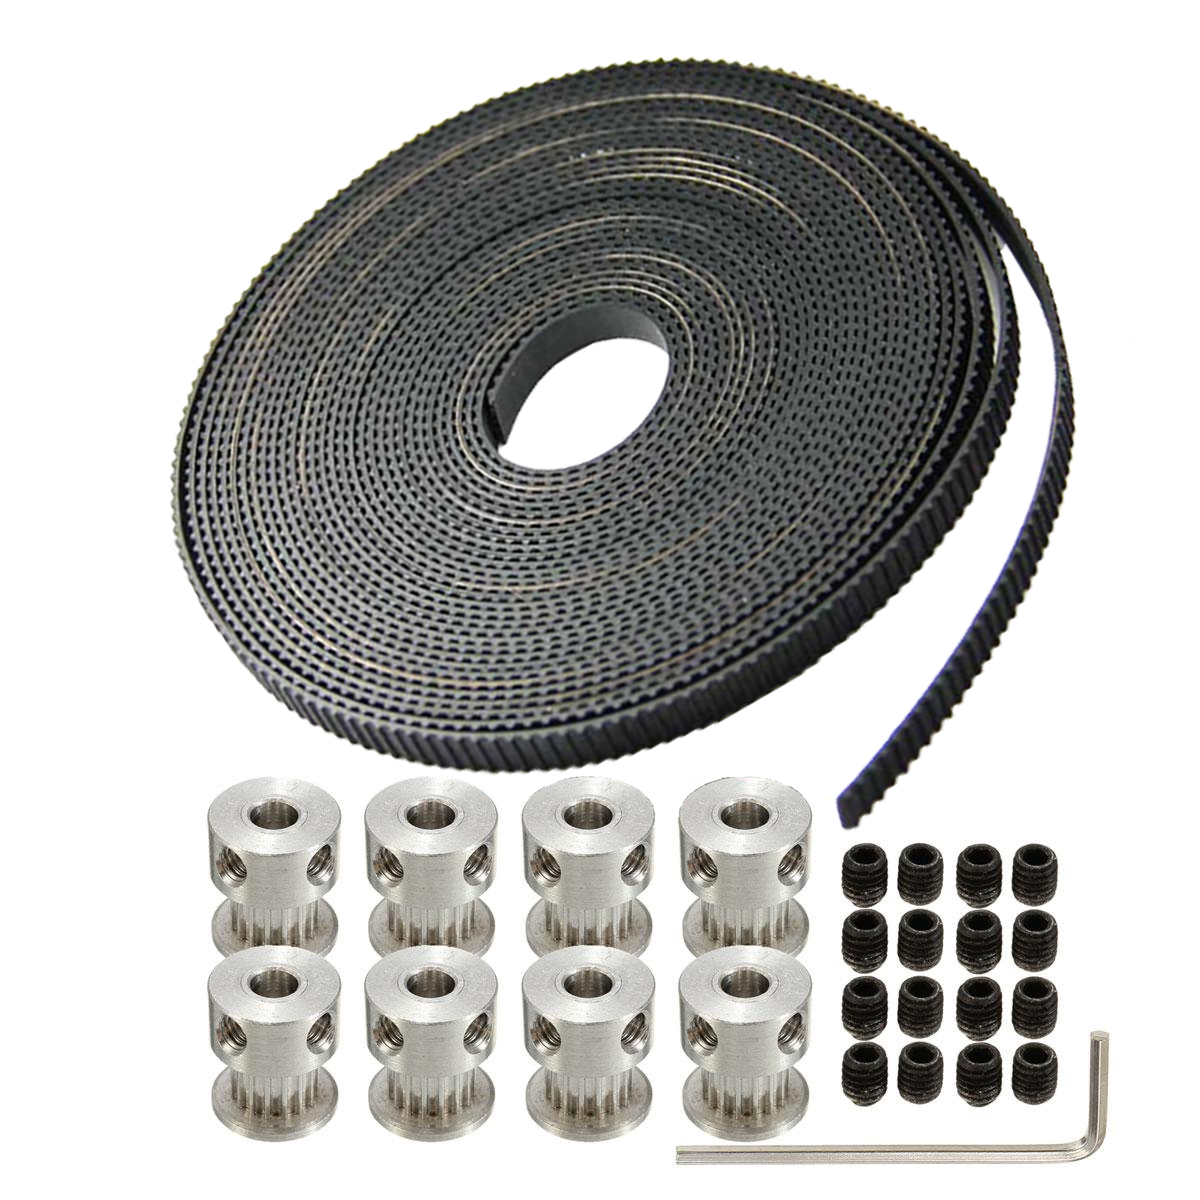 8pcs GT2 Pulley 20Teeth Bore5mm 5M GT2 Belt font b 3D b font font b Printer